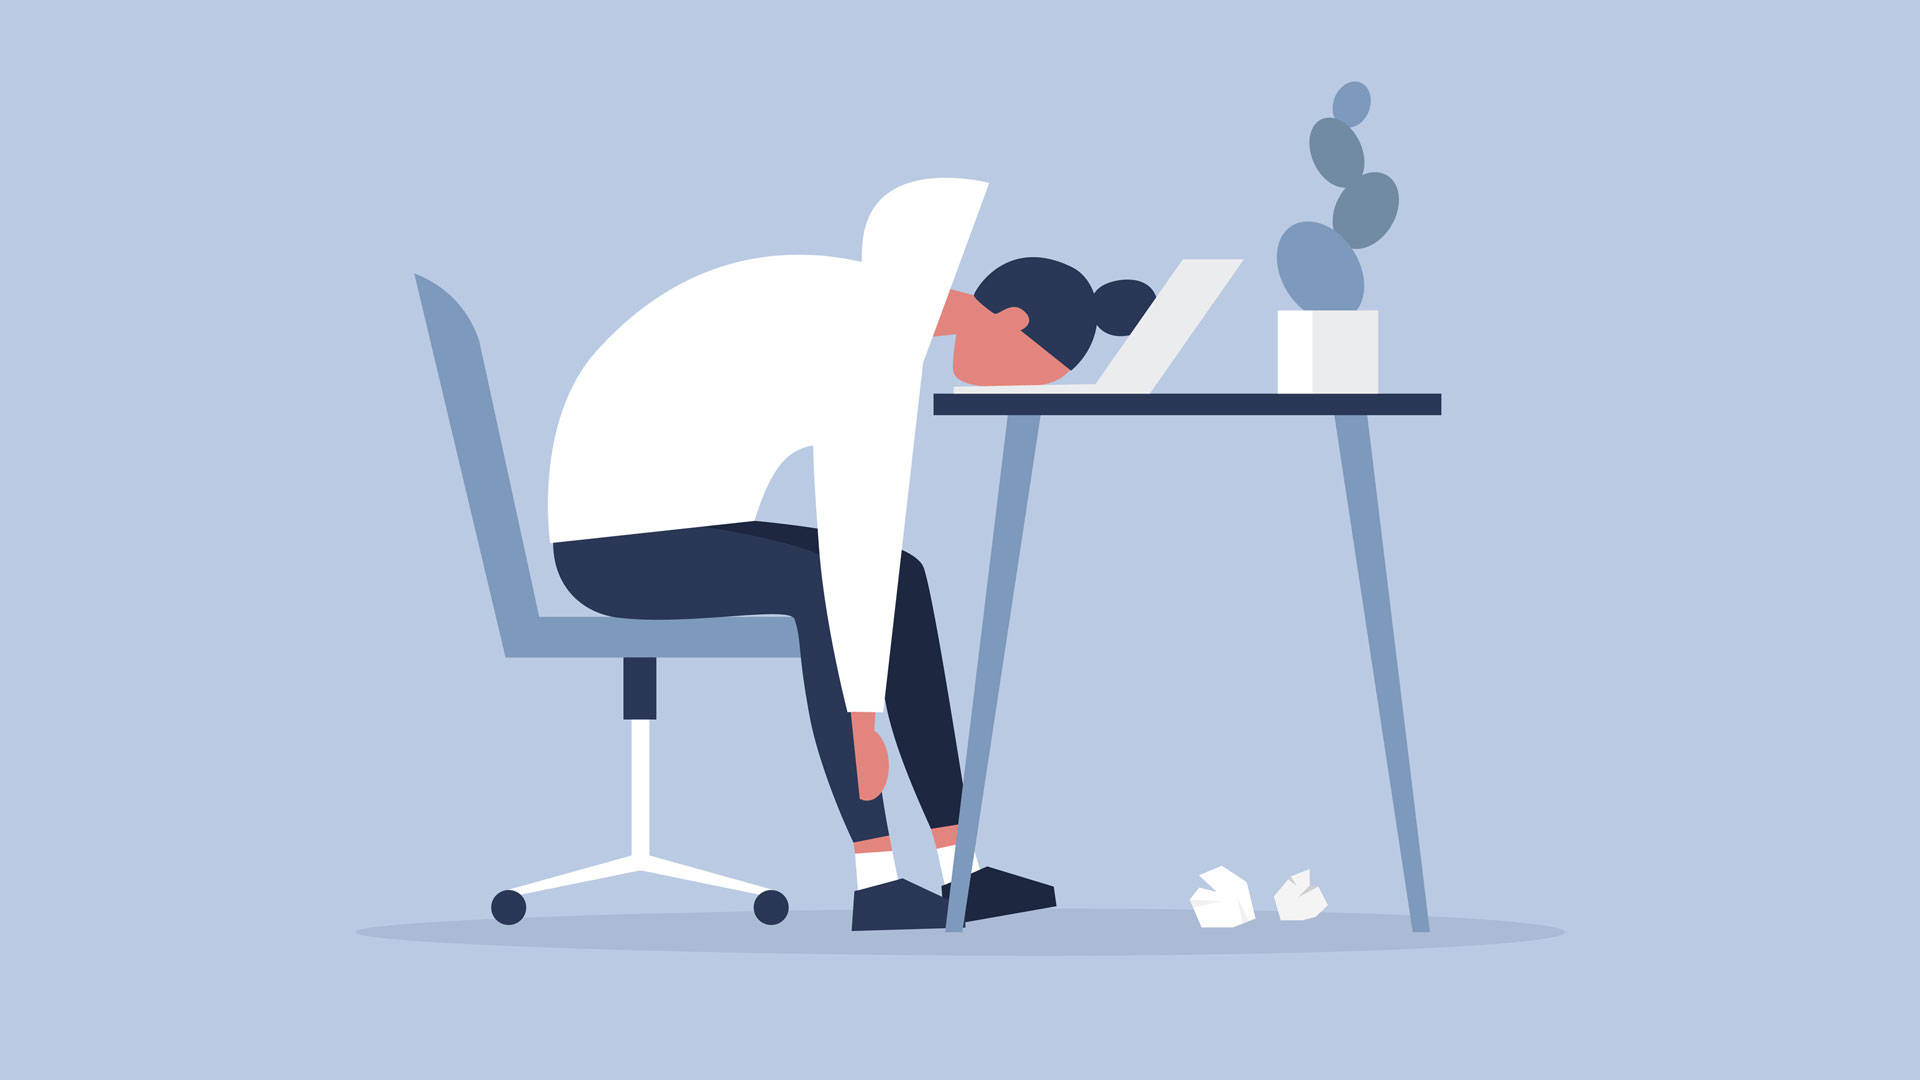 """We are left with twenty-four potentially monetizable hours that are sometimes not even restricted to our time zones or our sleep cycles,"" writes Jenny Odell in her new book, 'How To Do Nothing.' Illustration by Nadia Bormotova/iStock"